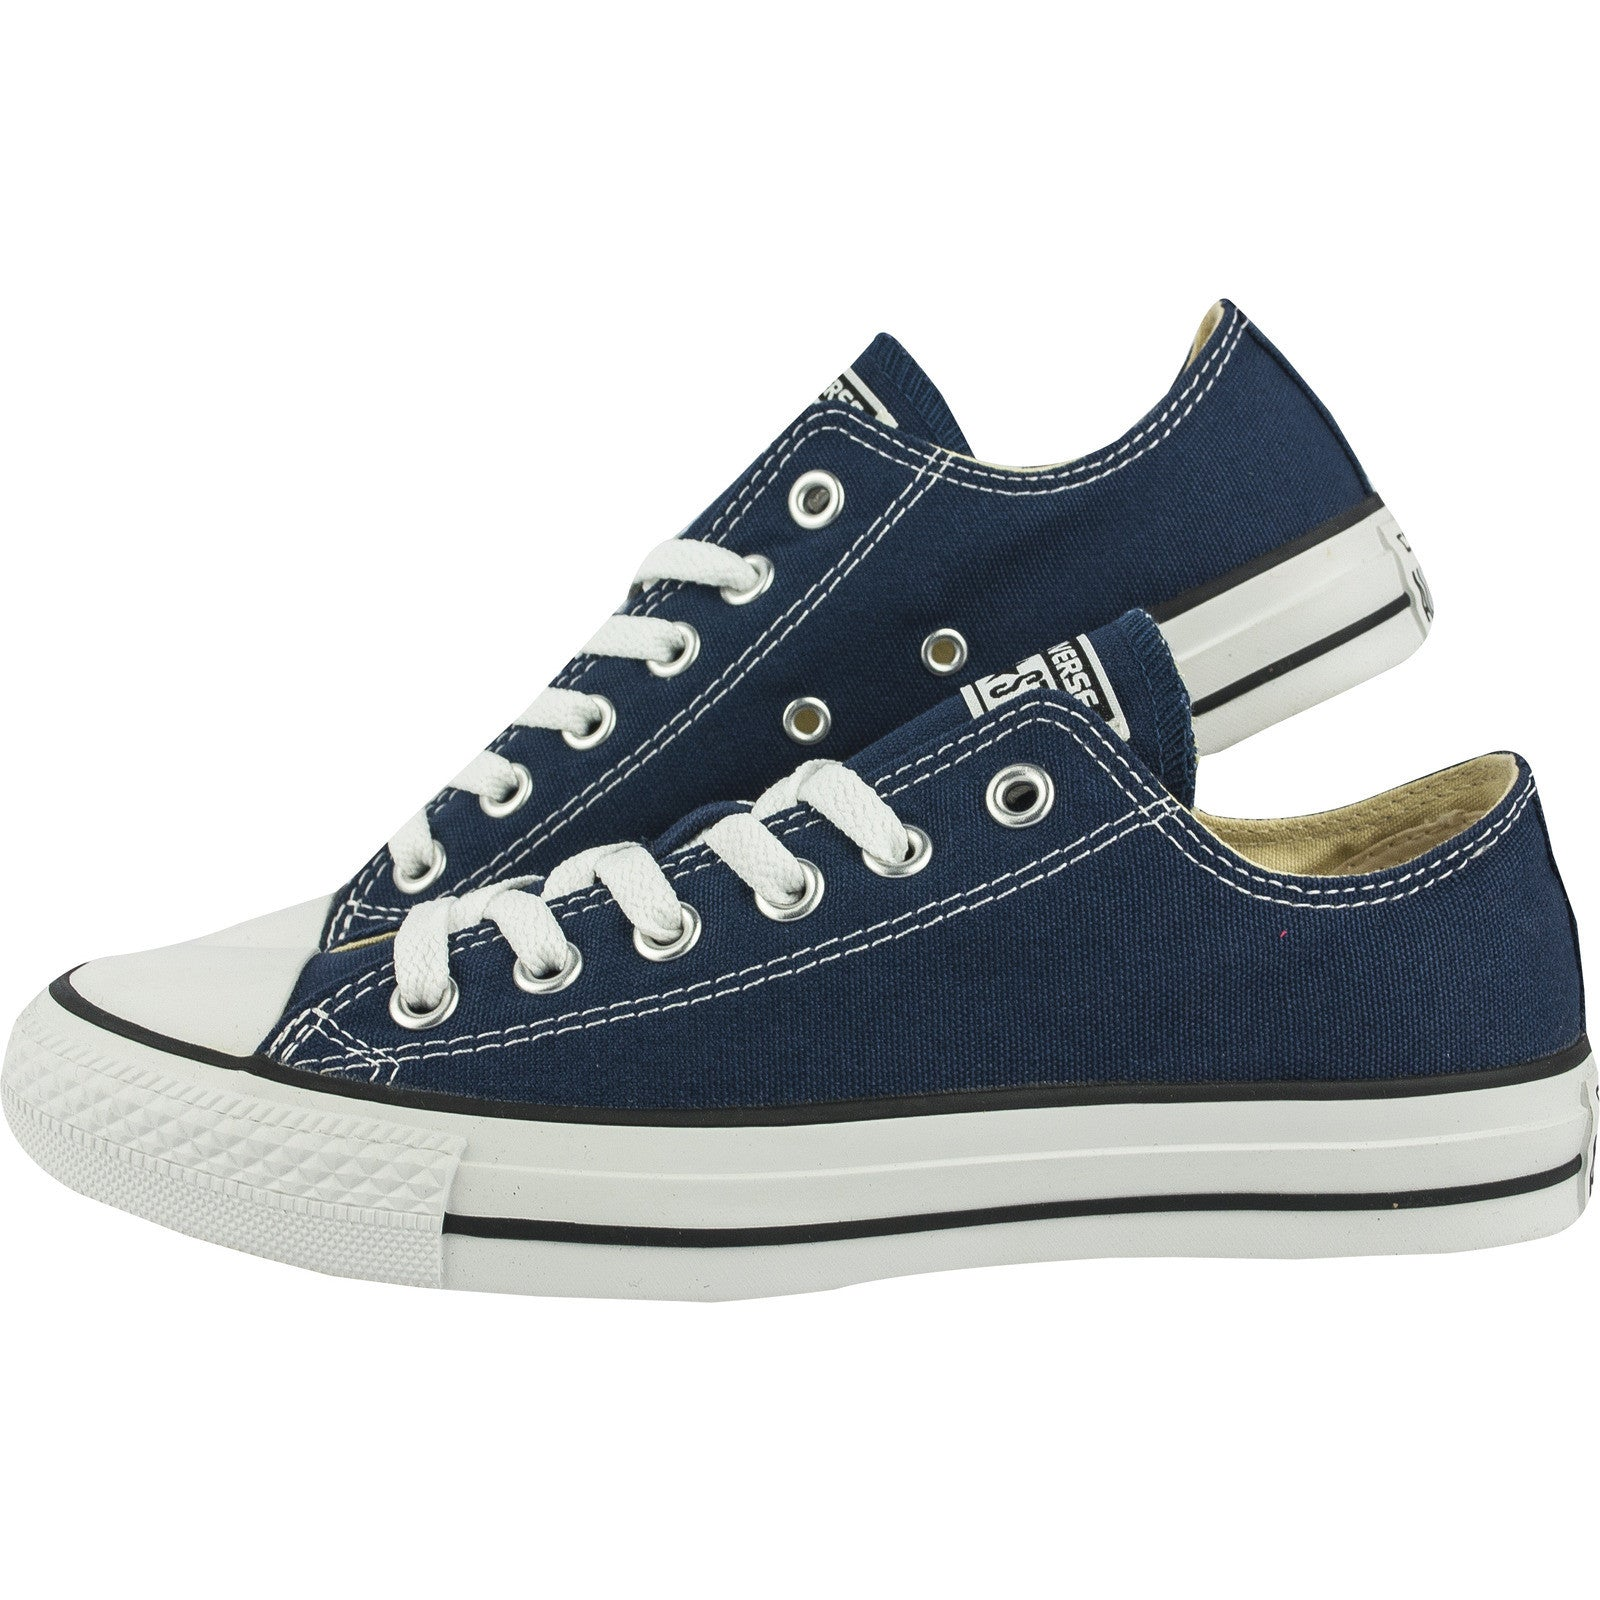 1987dbcbdc7b Converse Classic Chuck Taylor All Star Navy Blue Low Tops M9697C Sneaker  Men Women ...